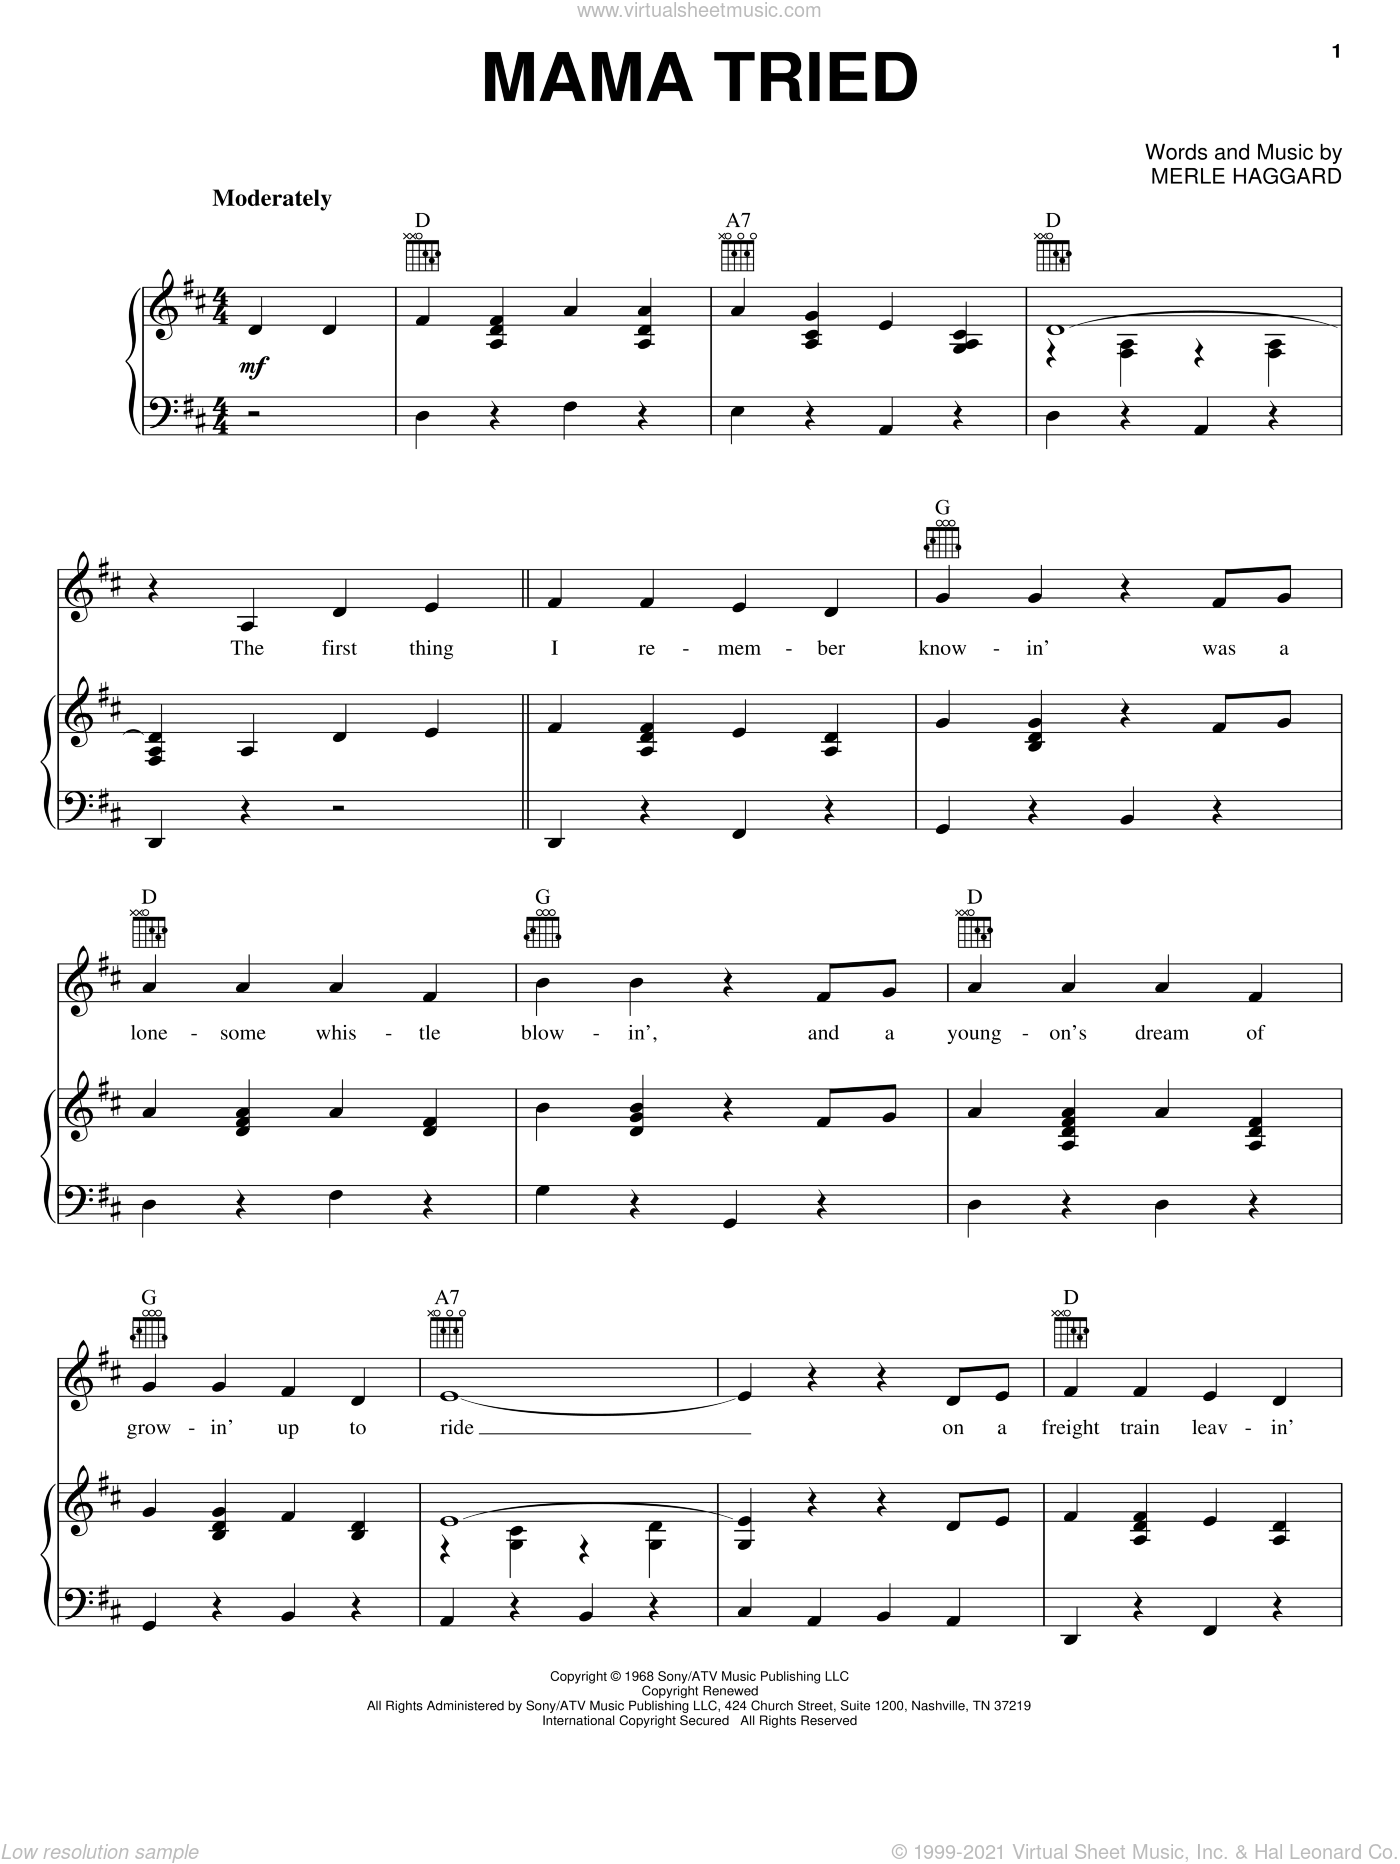 Mama Tried sheet music for voice, piano or guitar by Merle Haggard, intermediate skill level